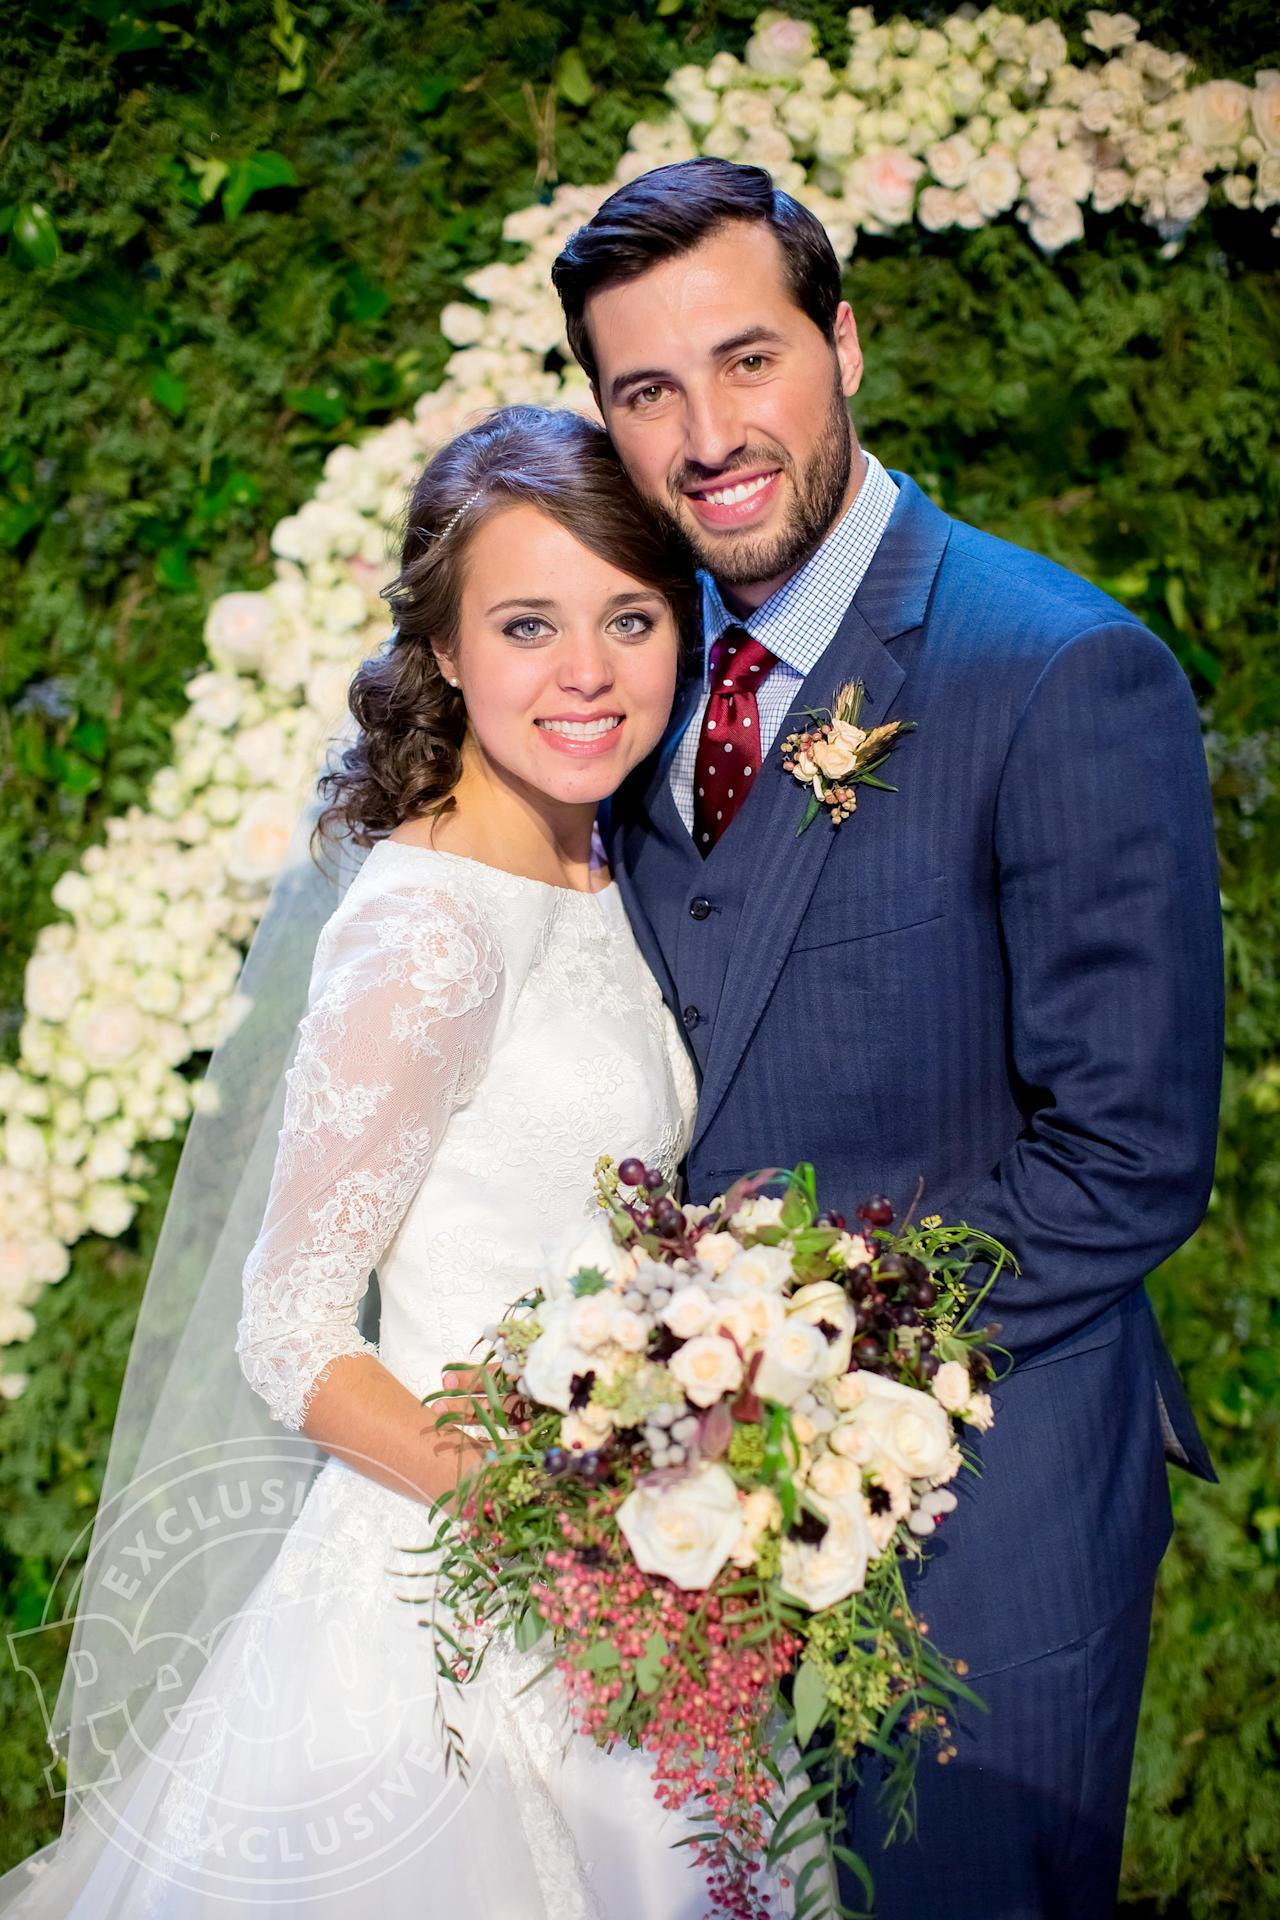 Jinger Duggar And Jeremy Vuolo On Their Wedding Day Saying I Do